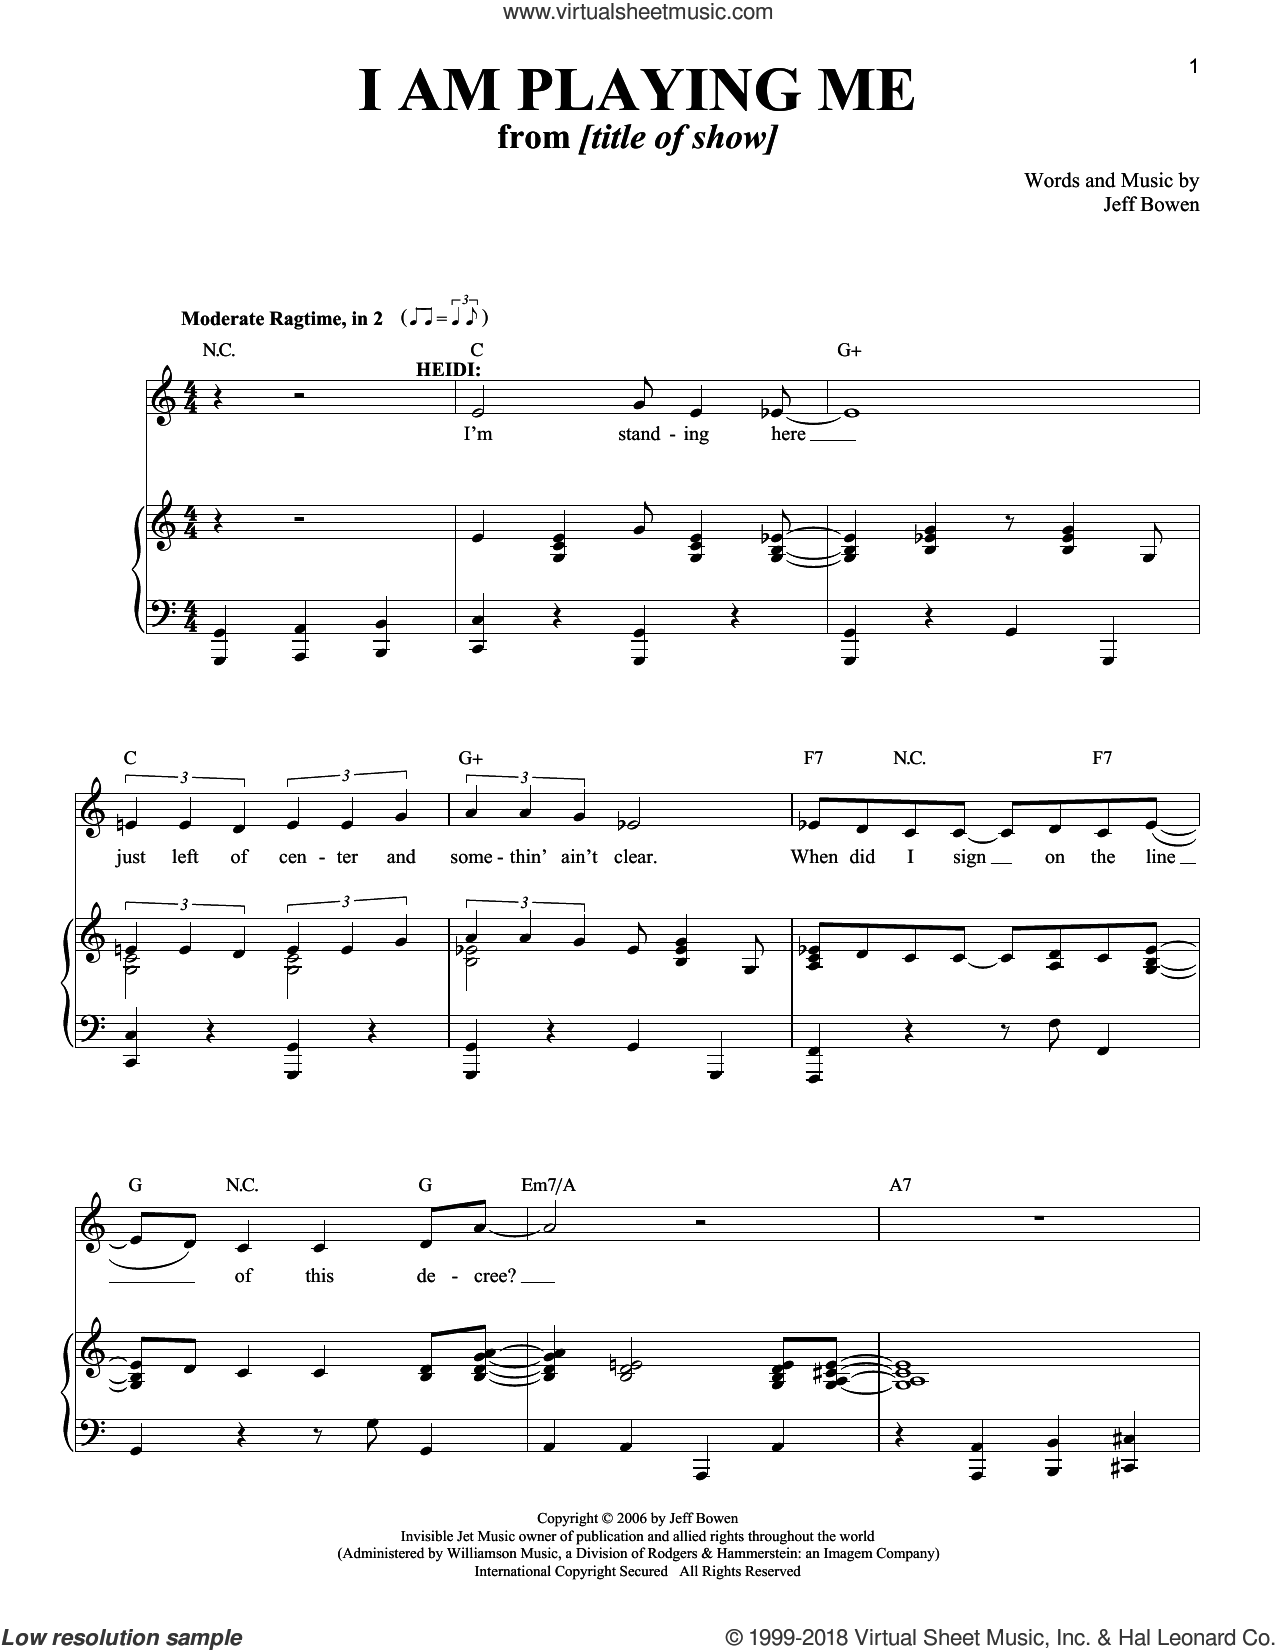 I Am Playing Me sheet music for voice and piano by Jeff Bowen, intermediate voice. Score Image Preview.